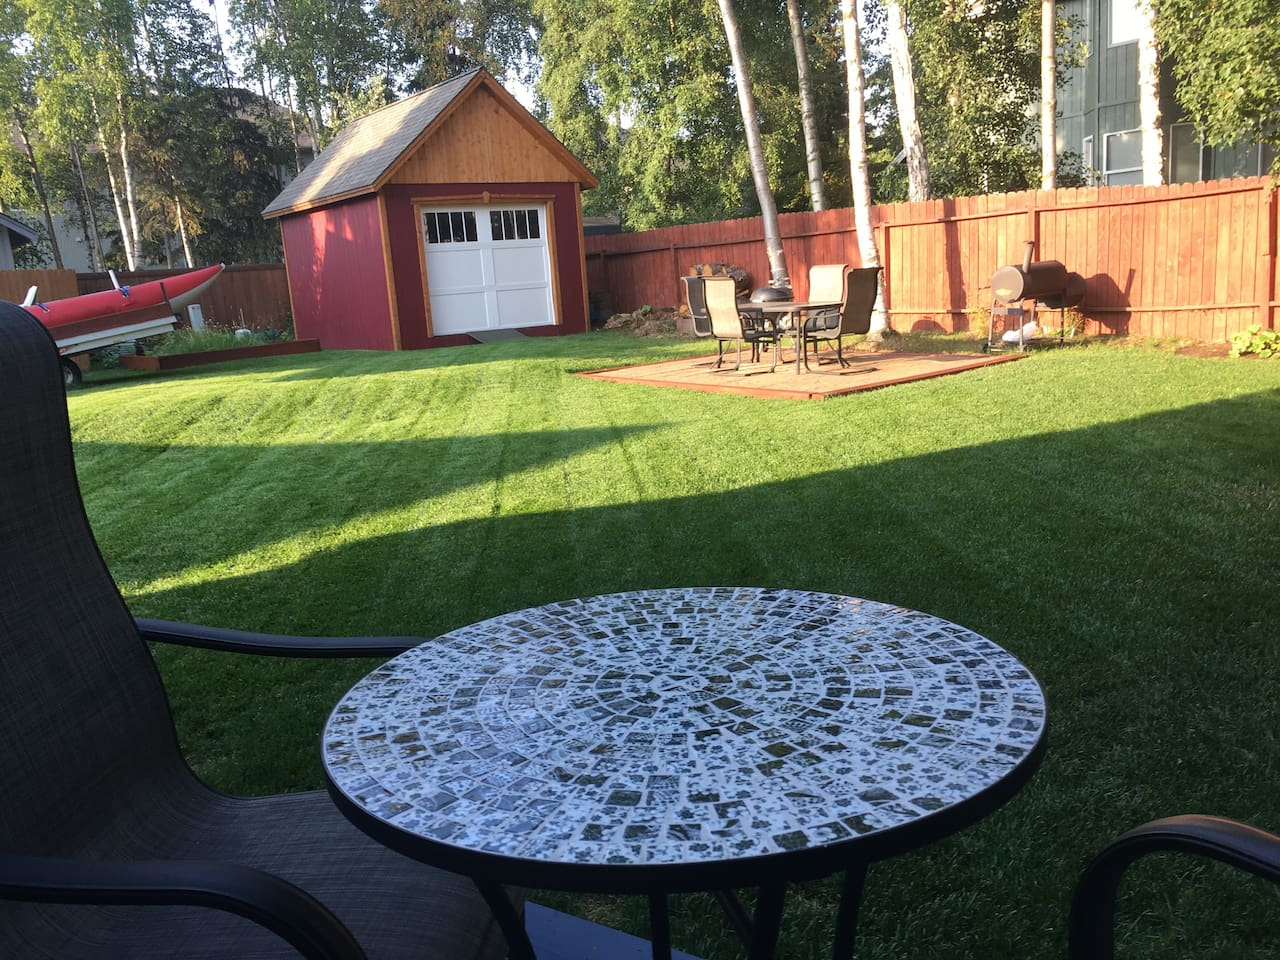 Bistro set on back deck, 18' x 20' furnished patio in back for evening sunny barbecues.